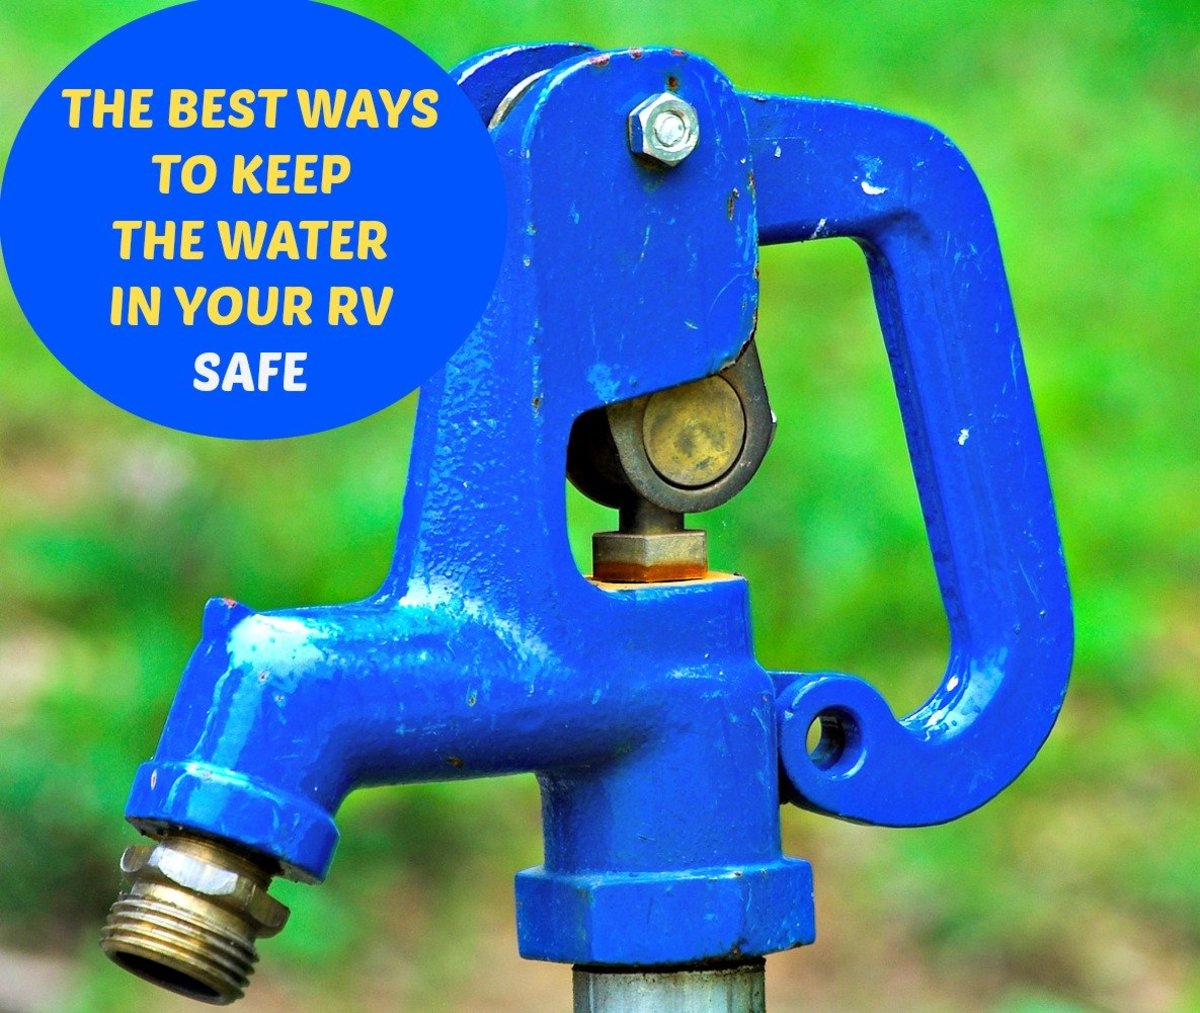 Following safety guidelines and using common sense will help to keep your RV water safe to use and drink.